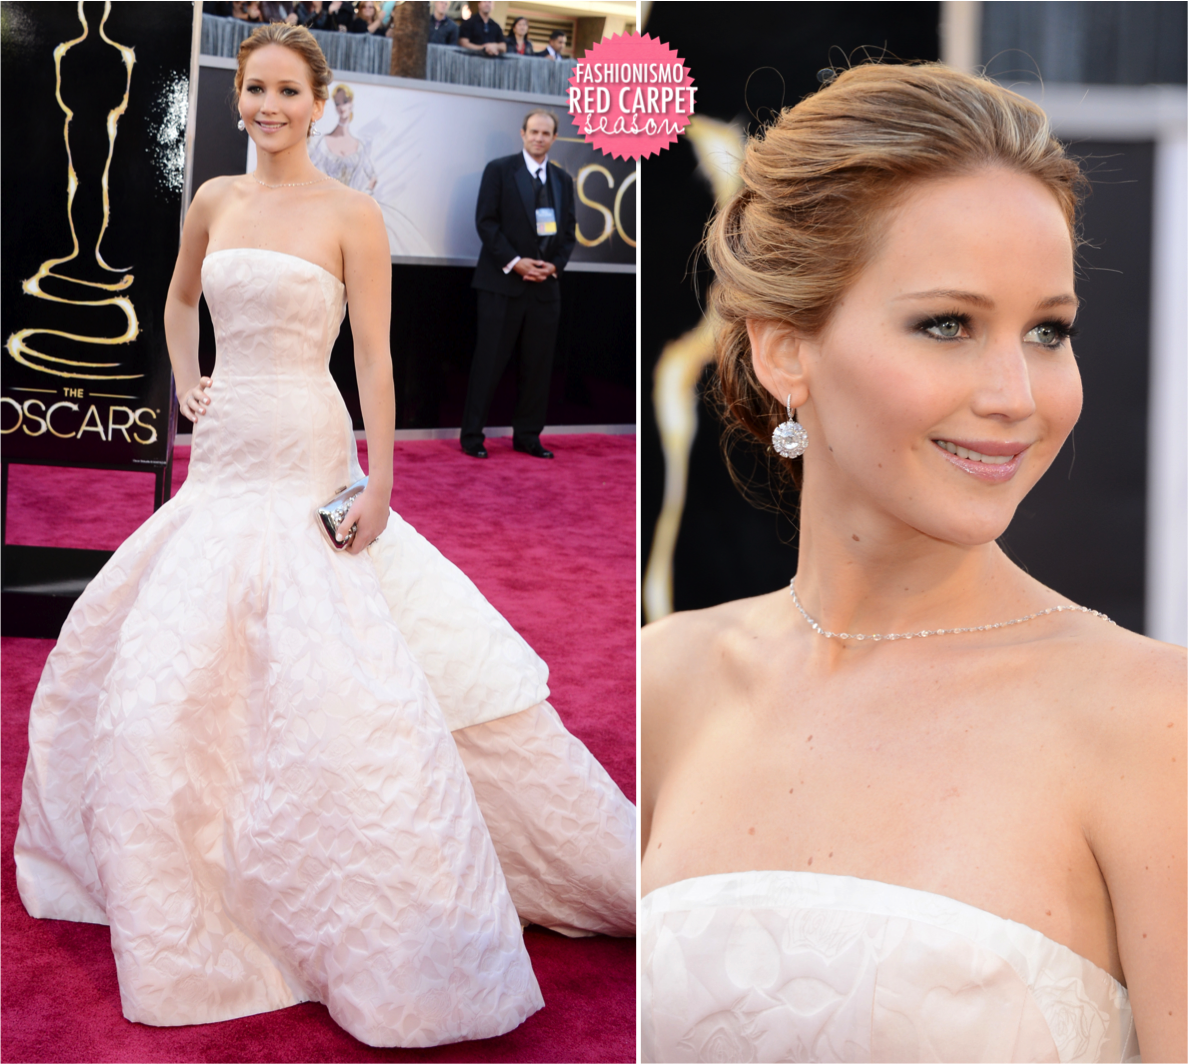 Oscar 2013: Jennifer Lawrence - Fashionismo